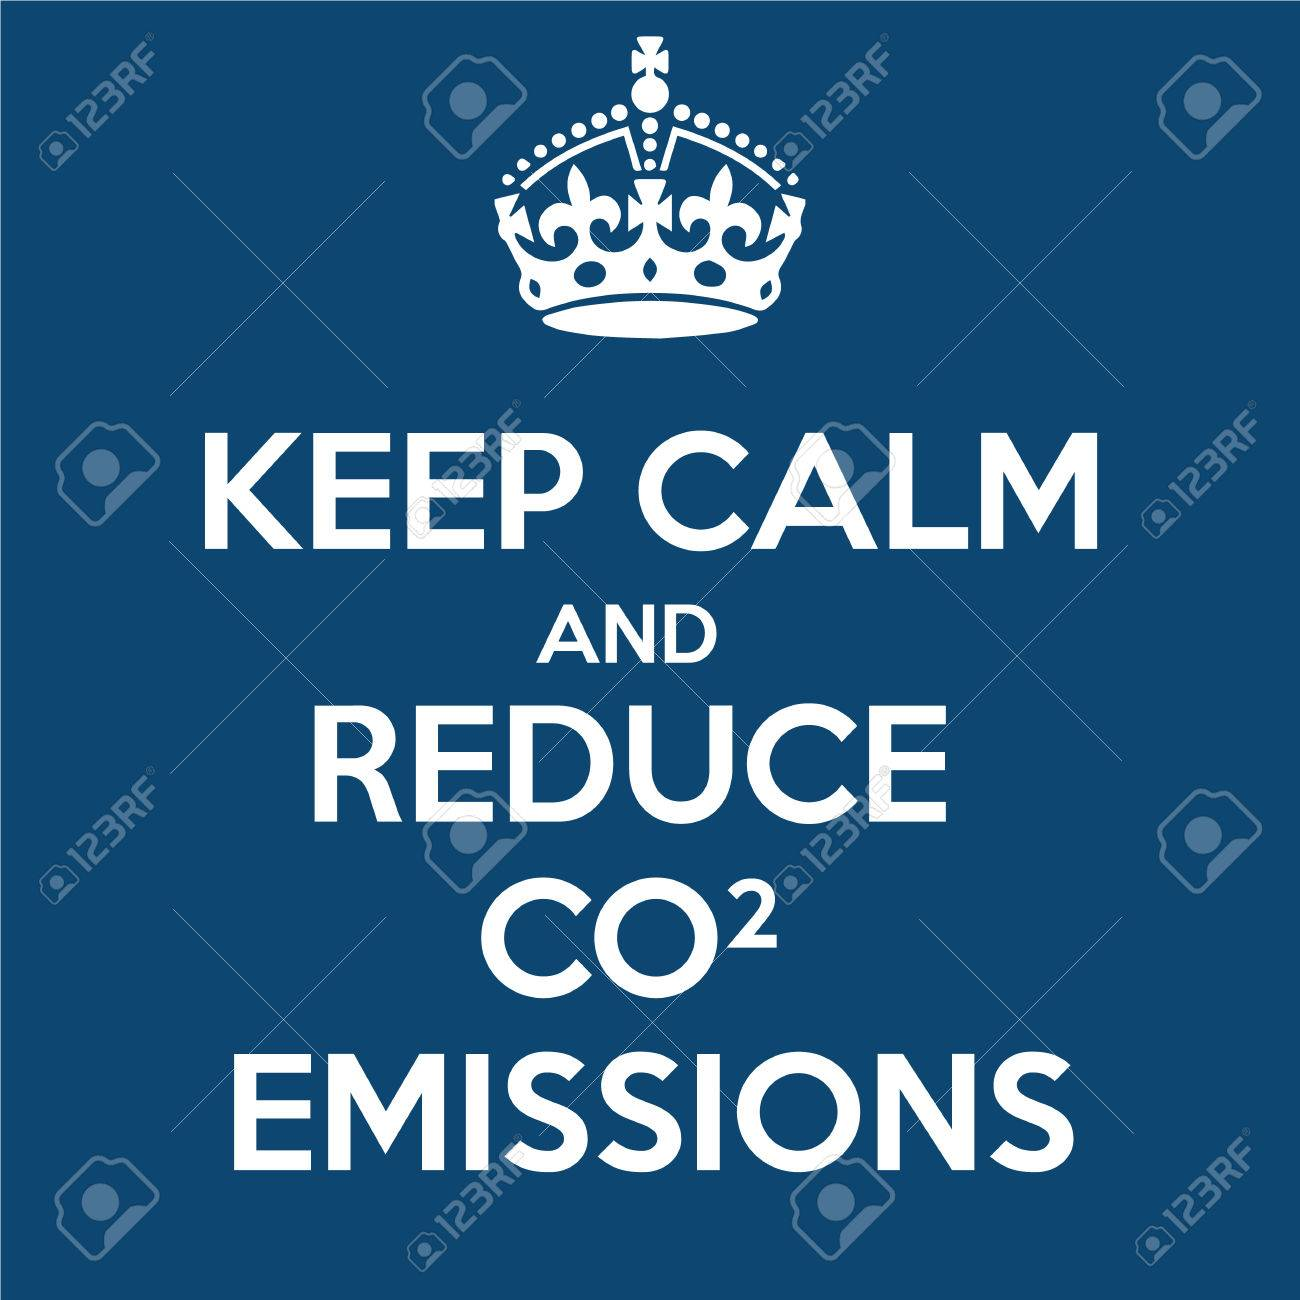 Keep Calm and Reduce CO2 Emissions Stock Photo - 46937933